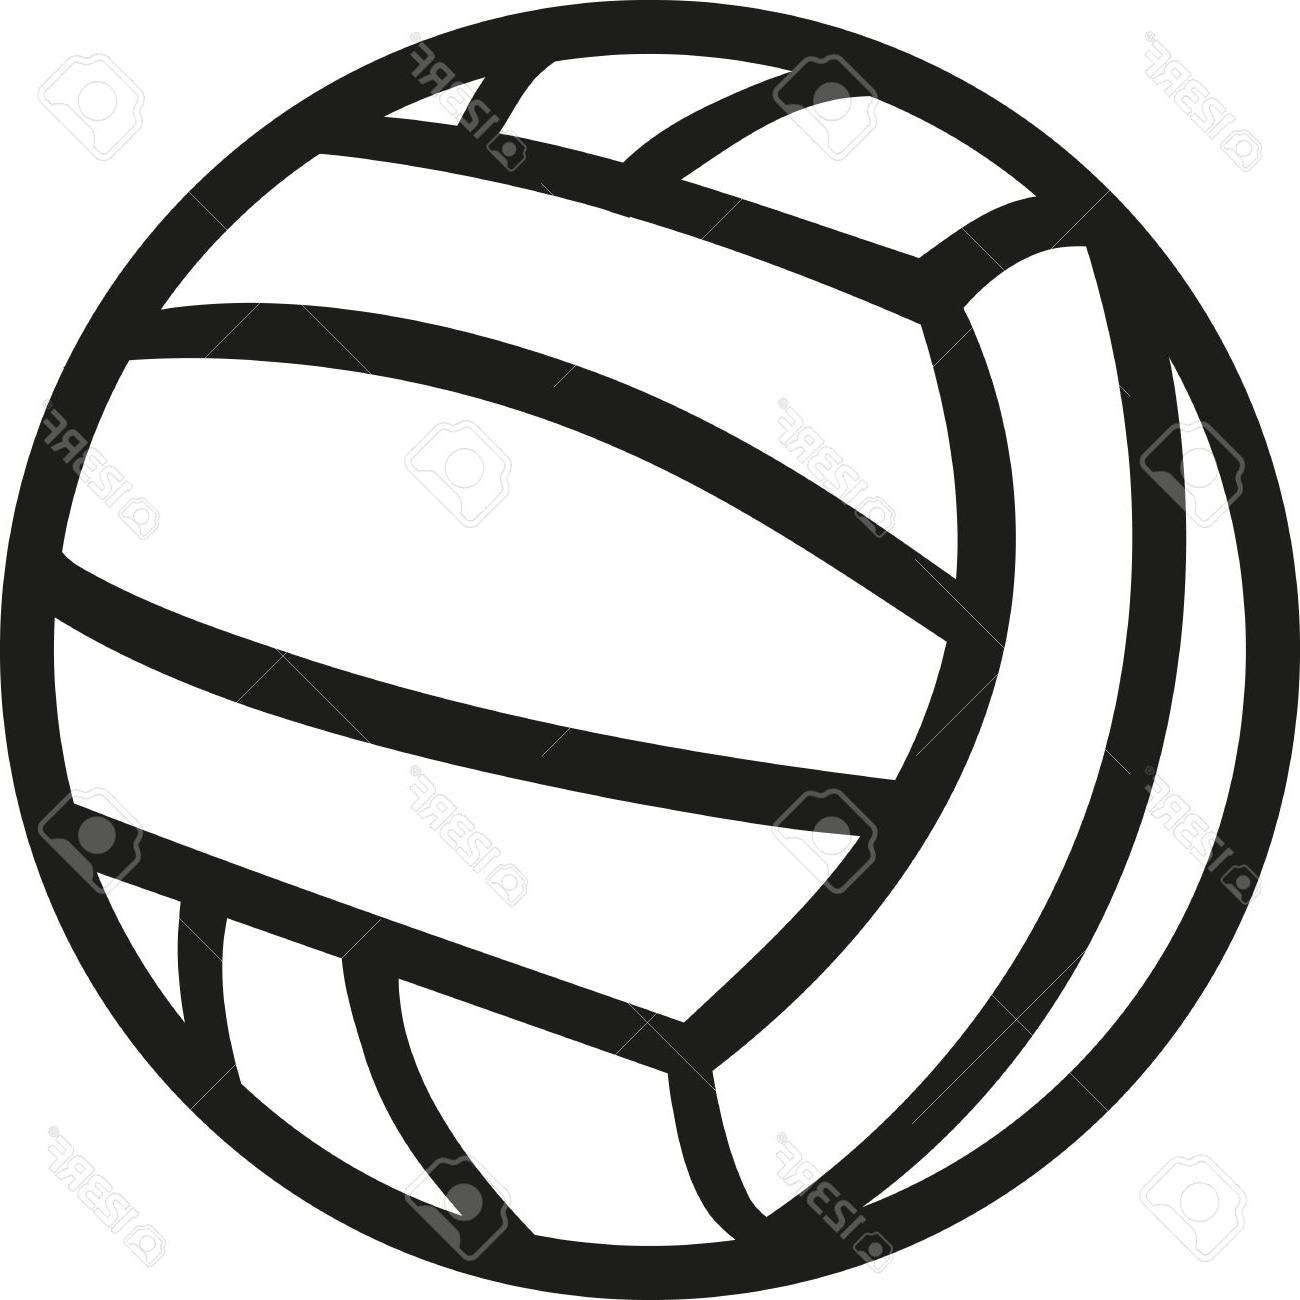 Balls clipart waterpolo, Balls waterpolo Transparent FREE.